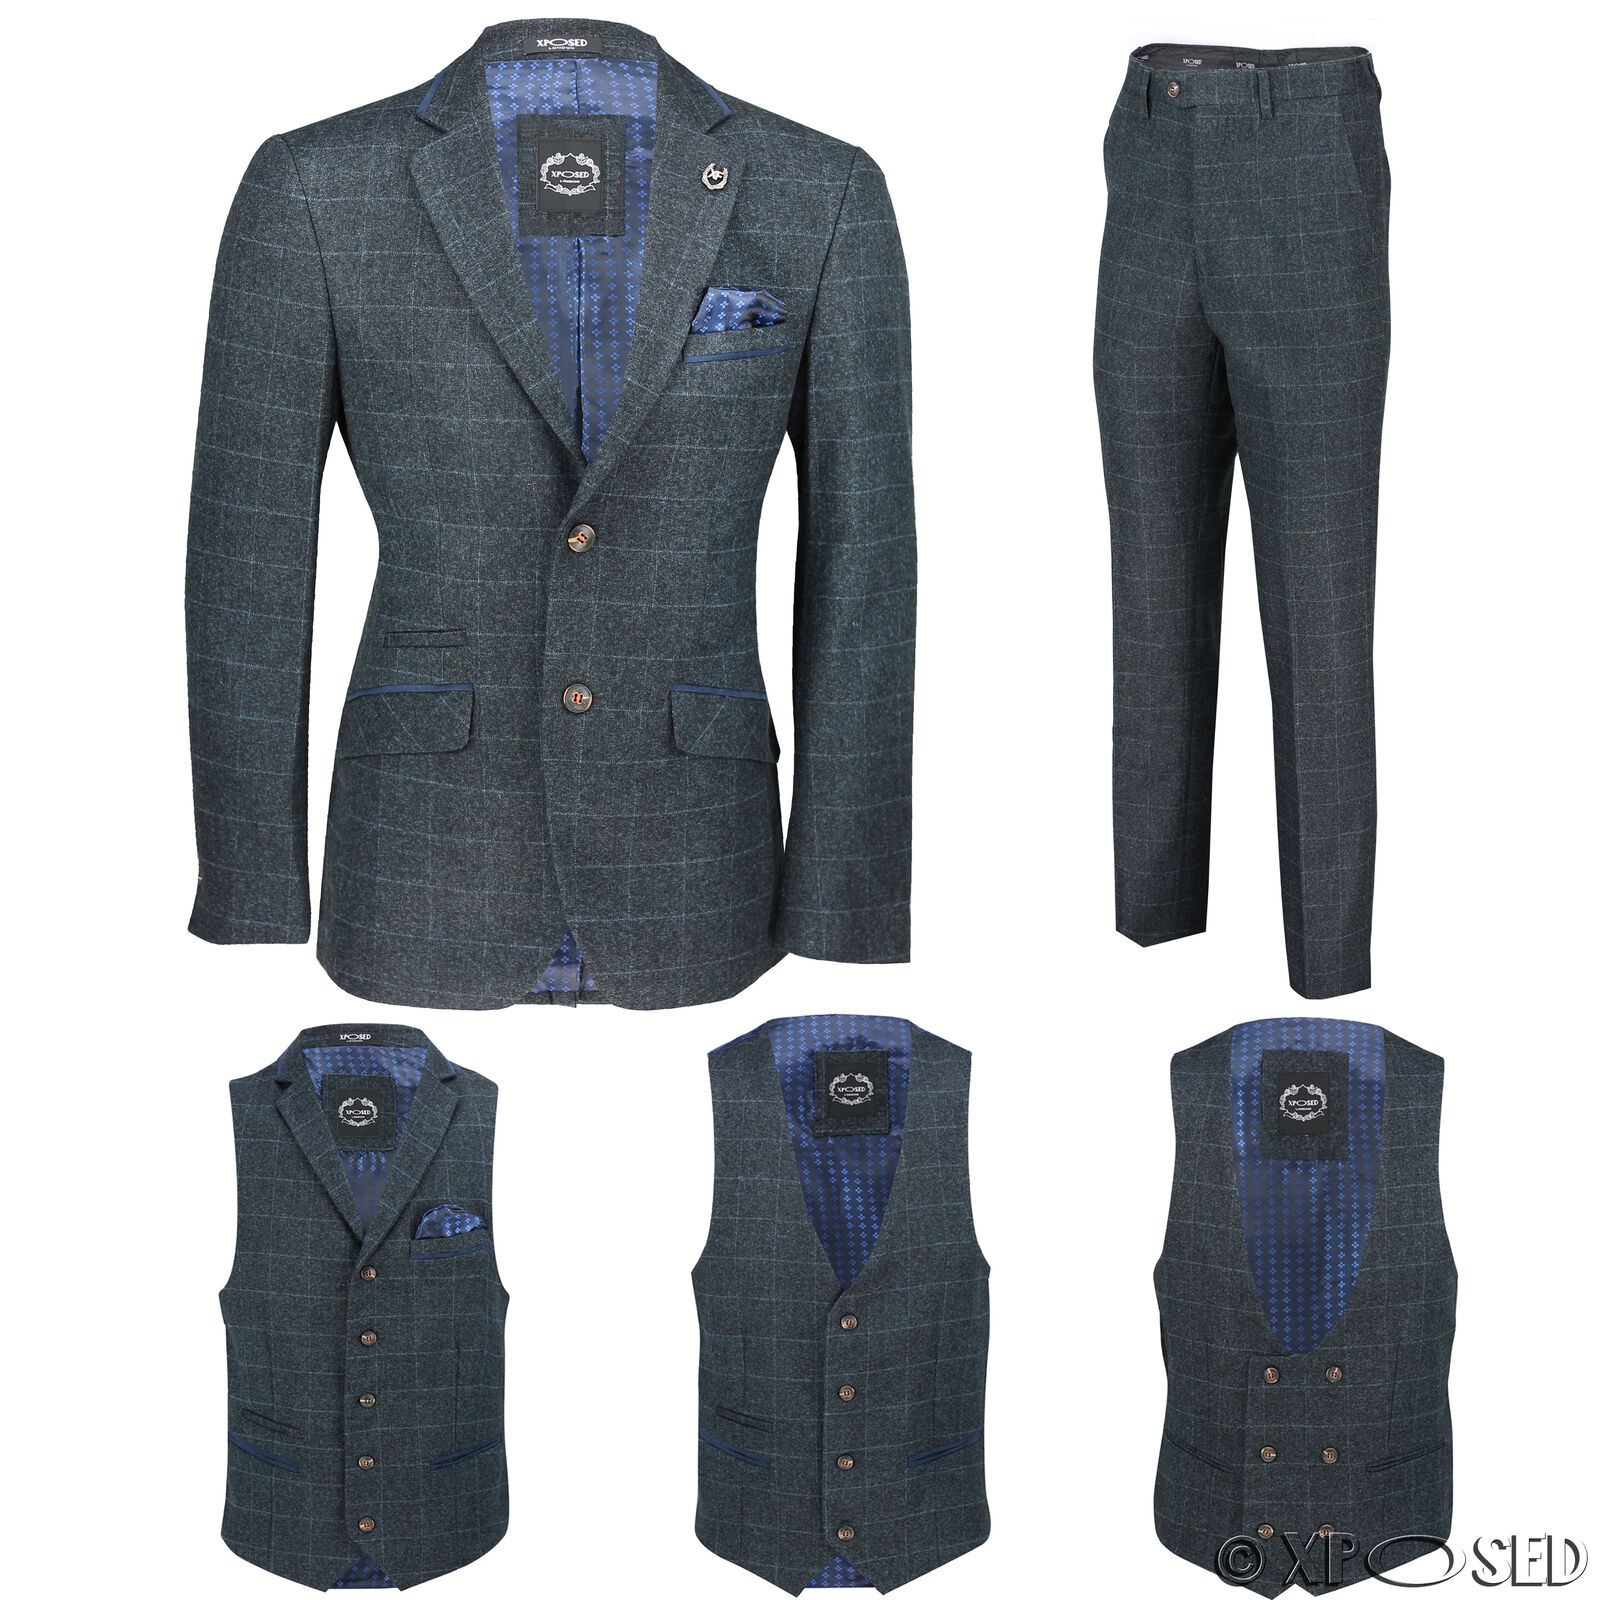 New Mens Blue Tweed Check 3 Piece Suit Sold Separately Blazer Trouser Waistcoat